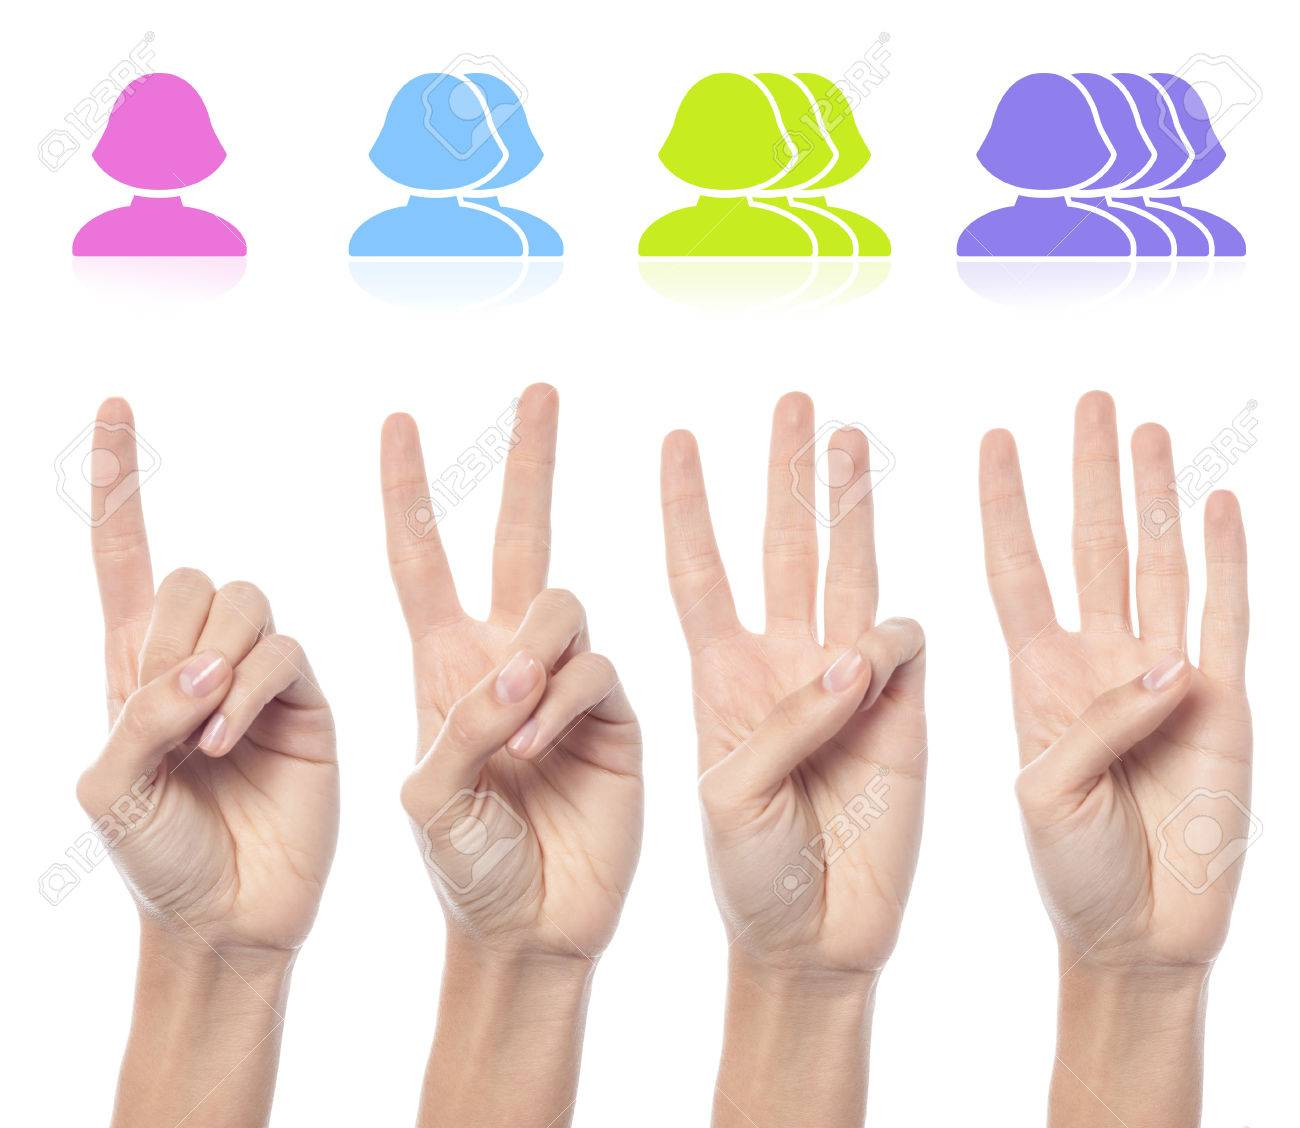 Counting woman hands with female smileys - 60524486